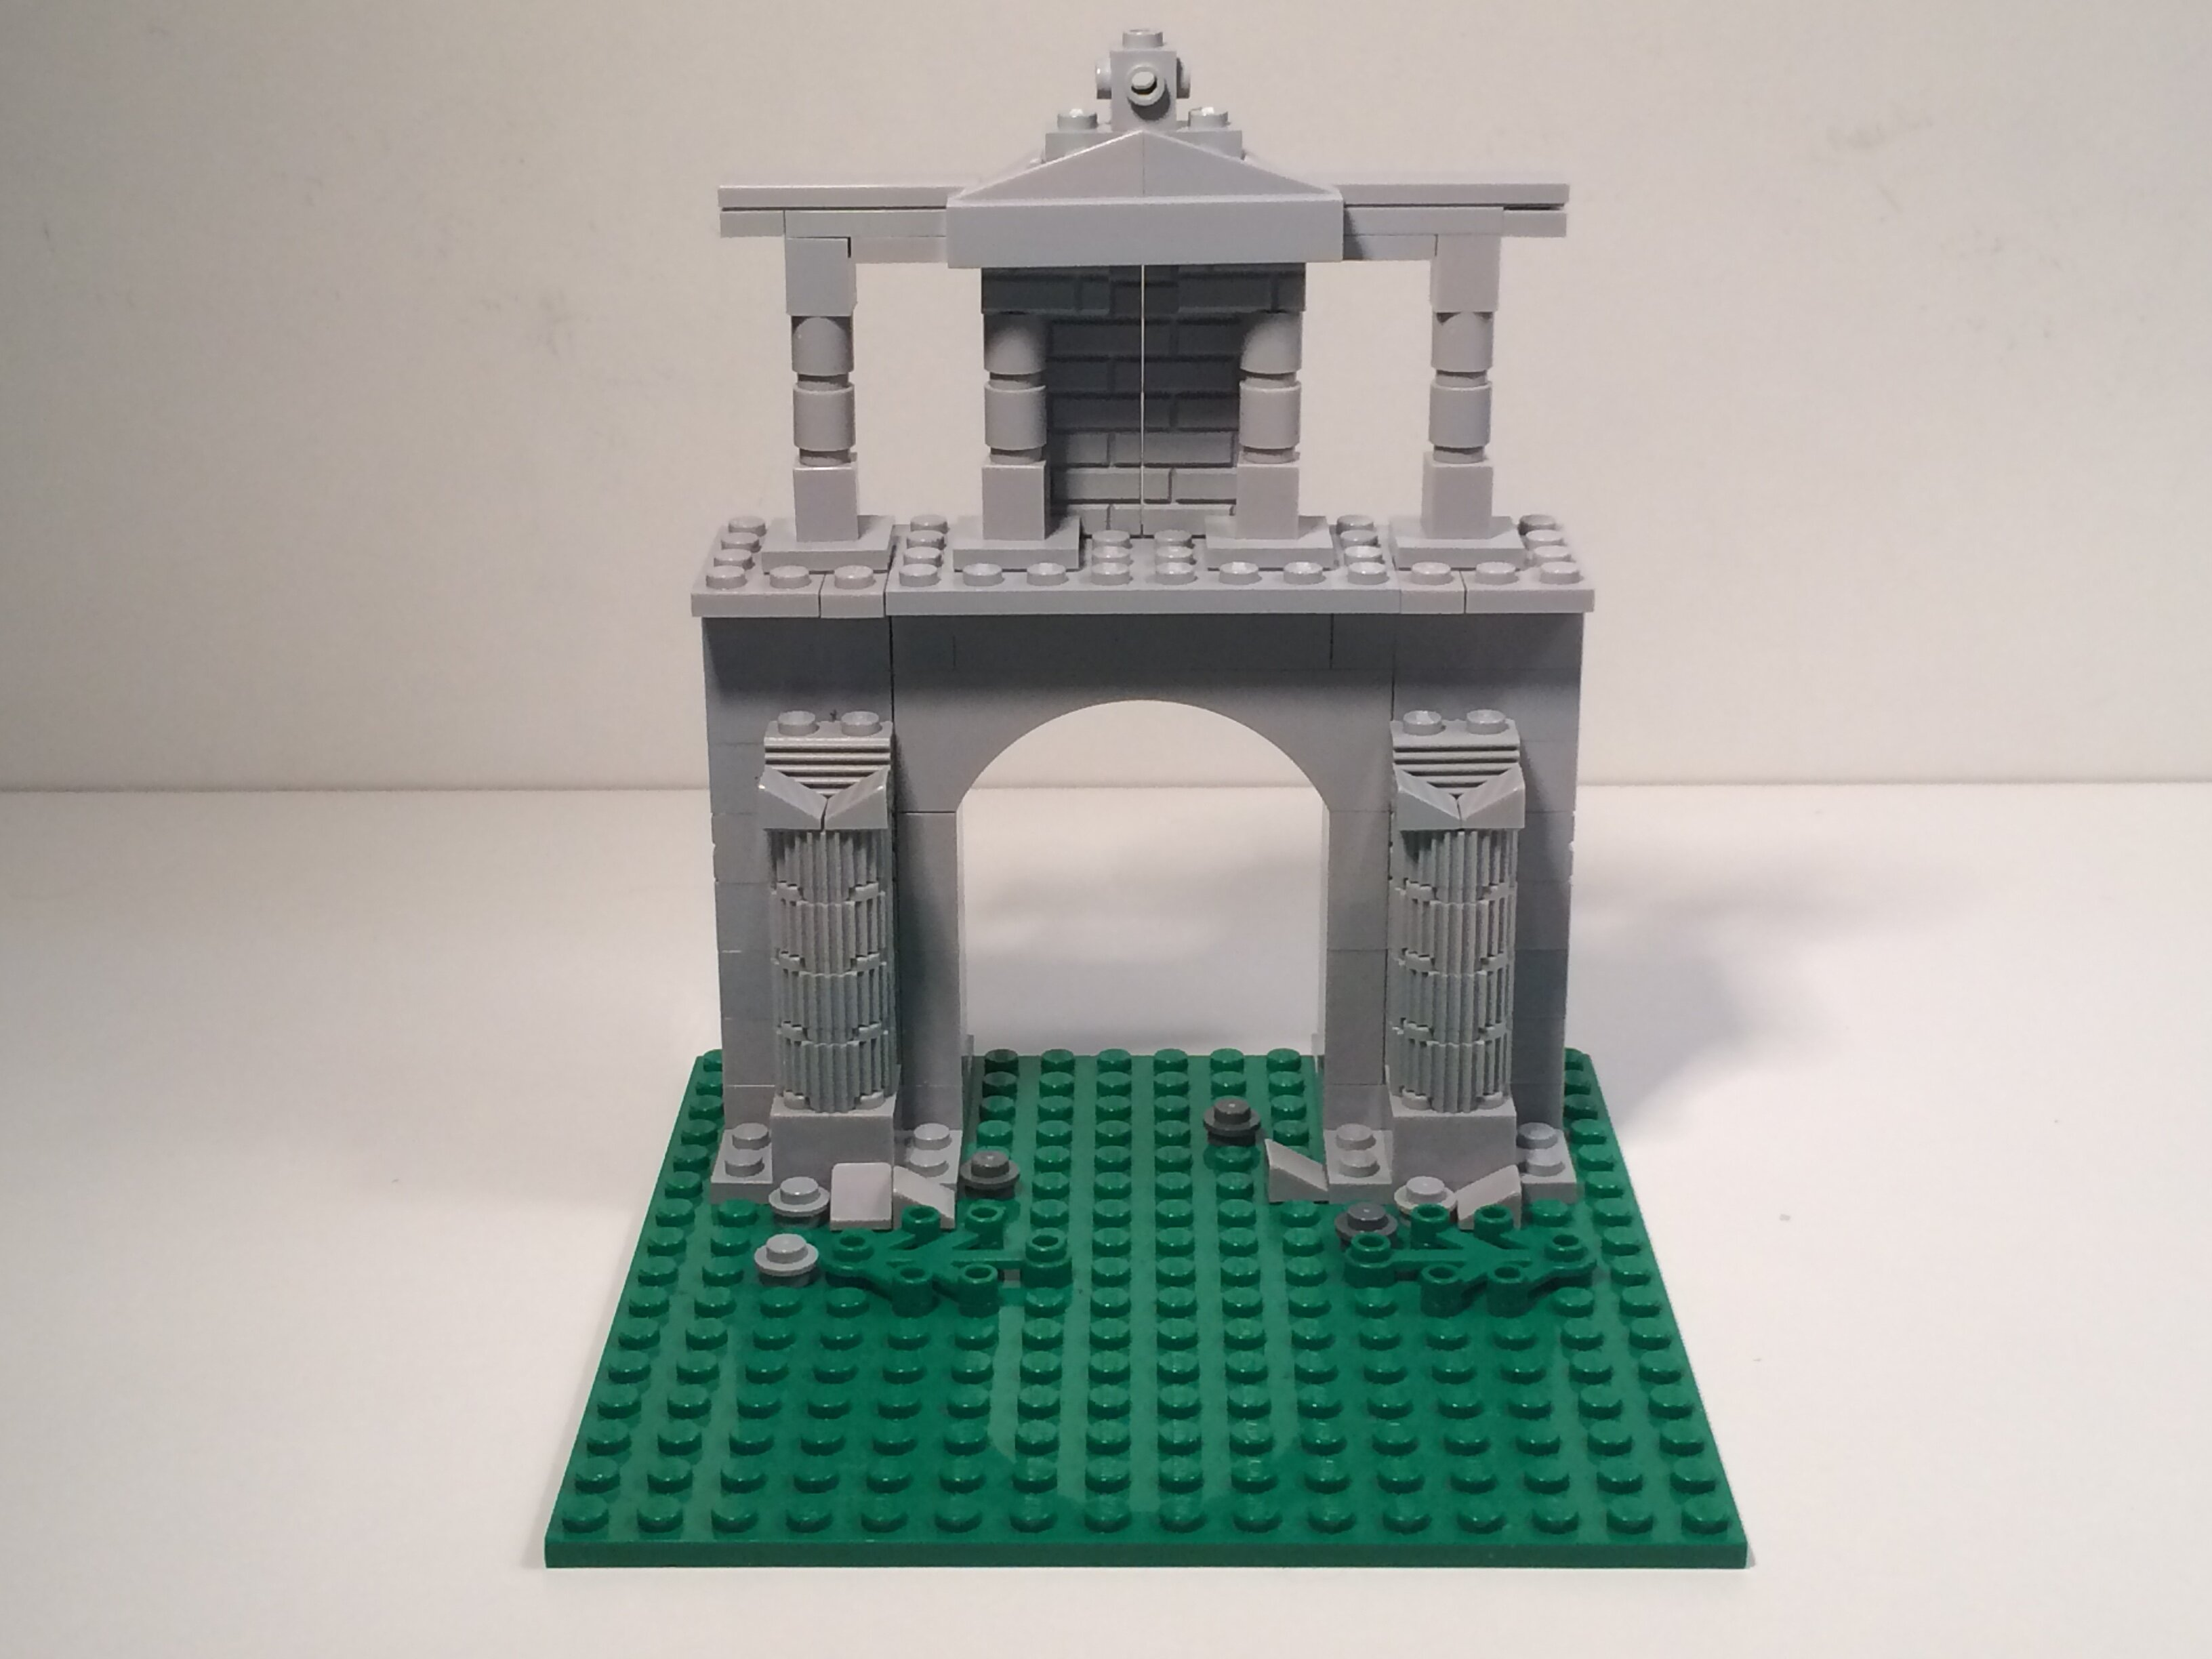 Athens Arch of Hadrian   Lego Creations   The TTV Message Boards 2A55DF49 FA29 47F2 911C 2823D753971A jpeg3264x2448 835 KB